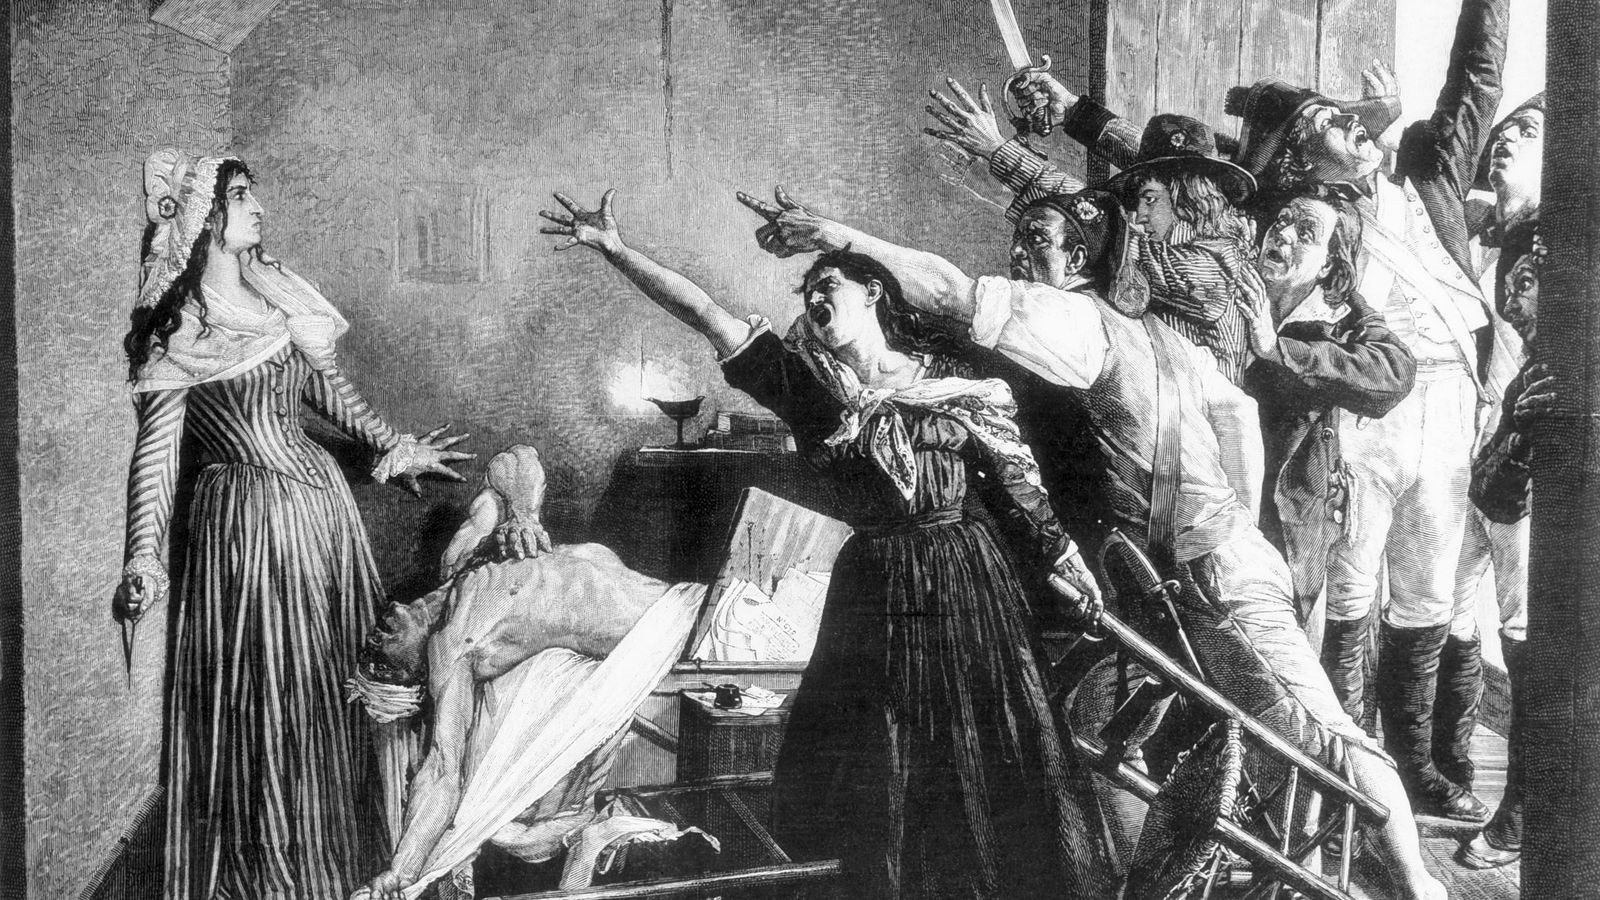 This 19th-century engraving depicts the moment after French revolutionary Jean-Paul Marat is assassinated in his bathtub ...